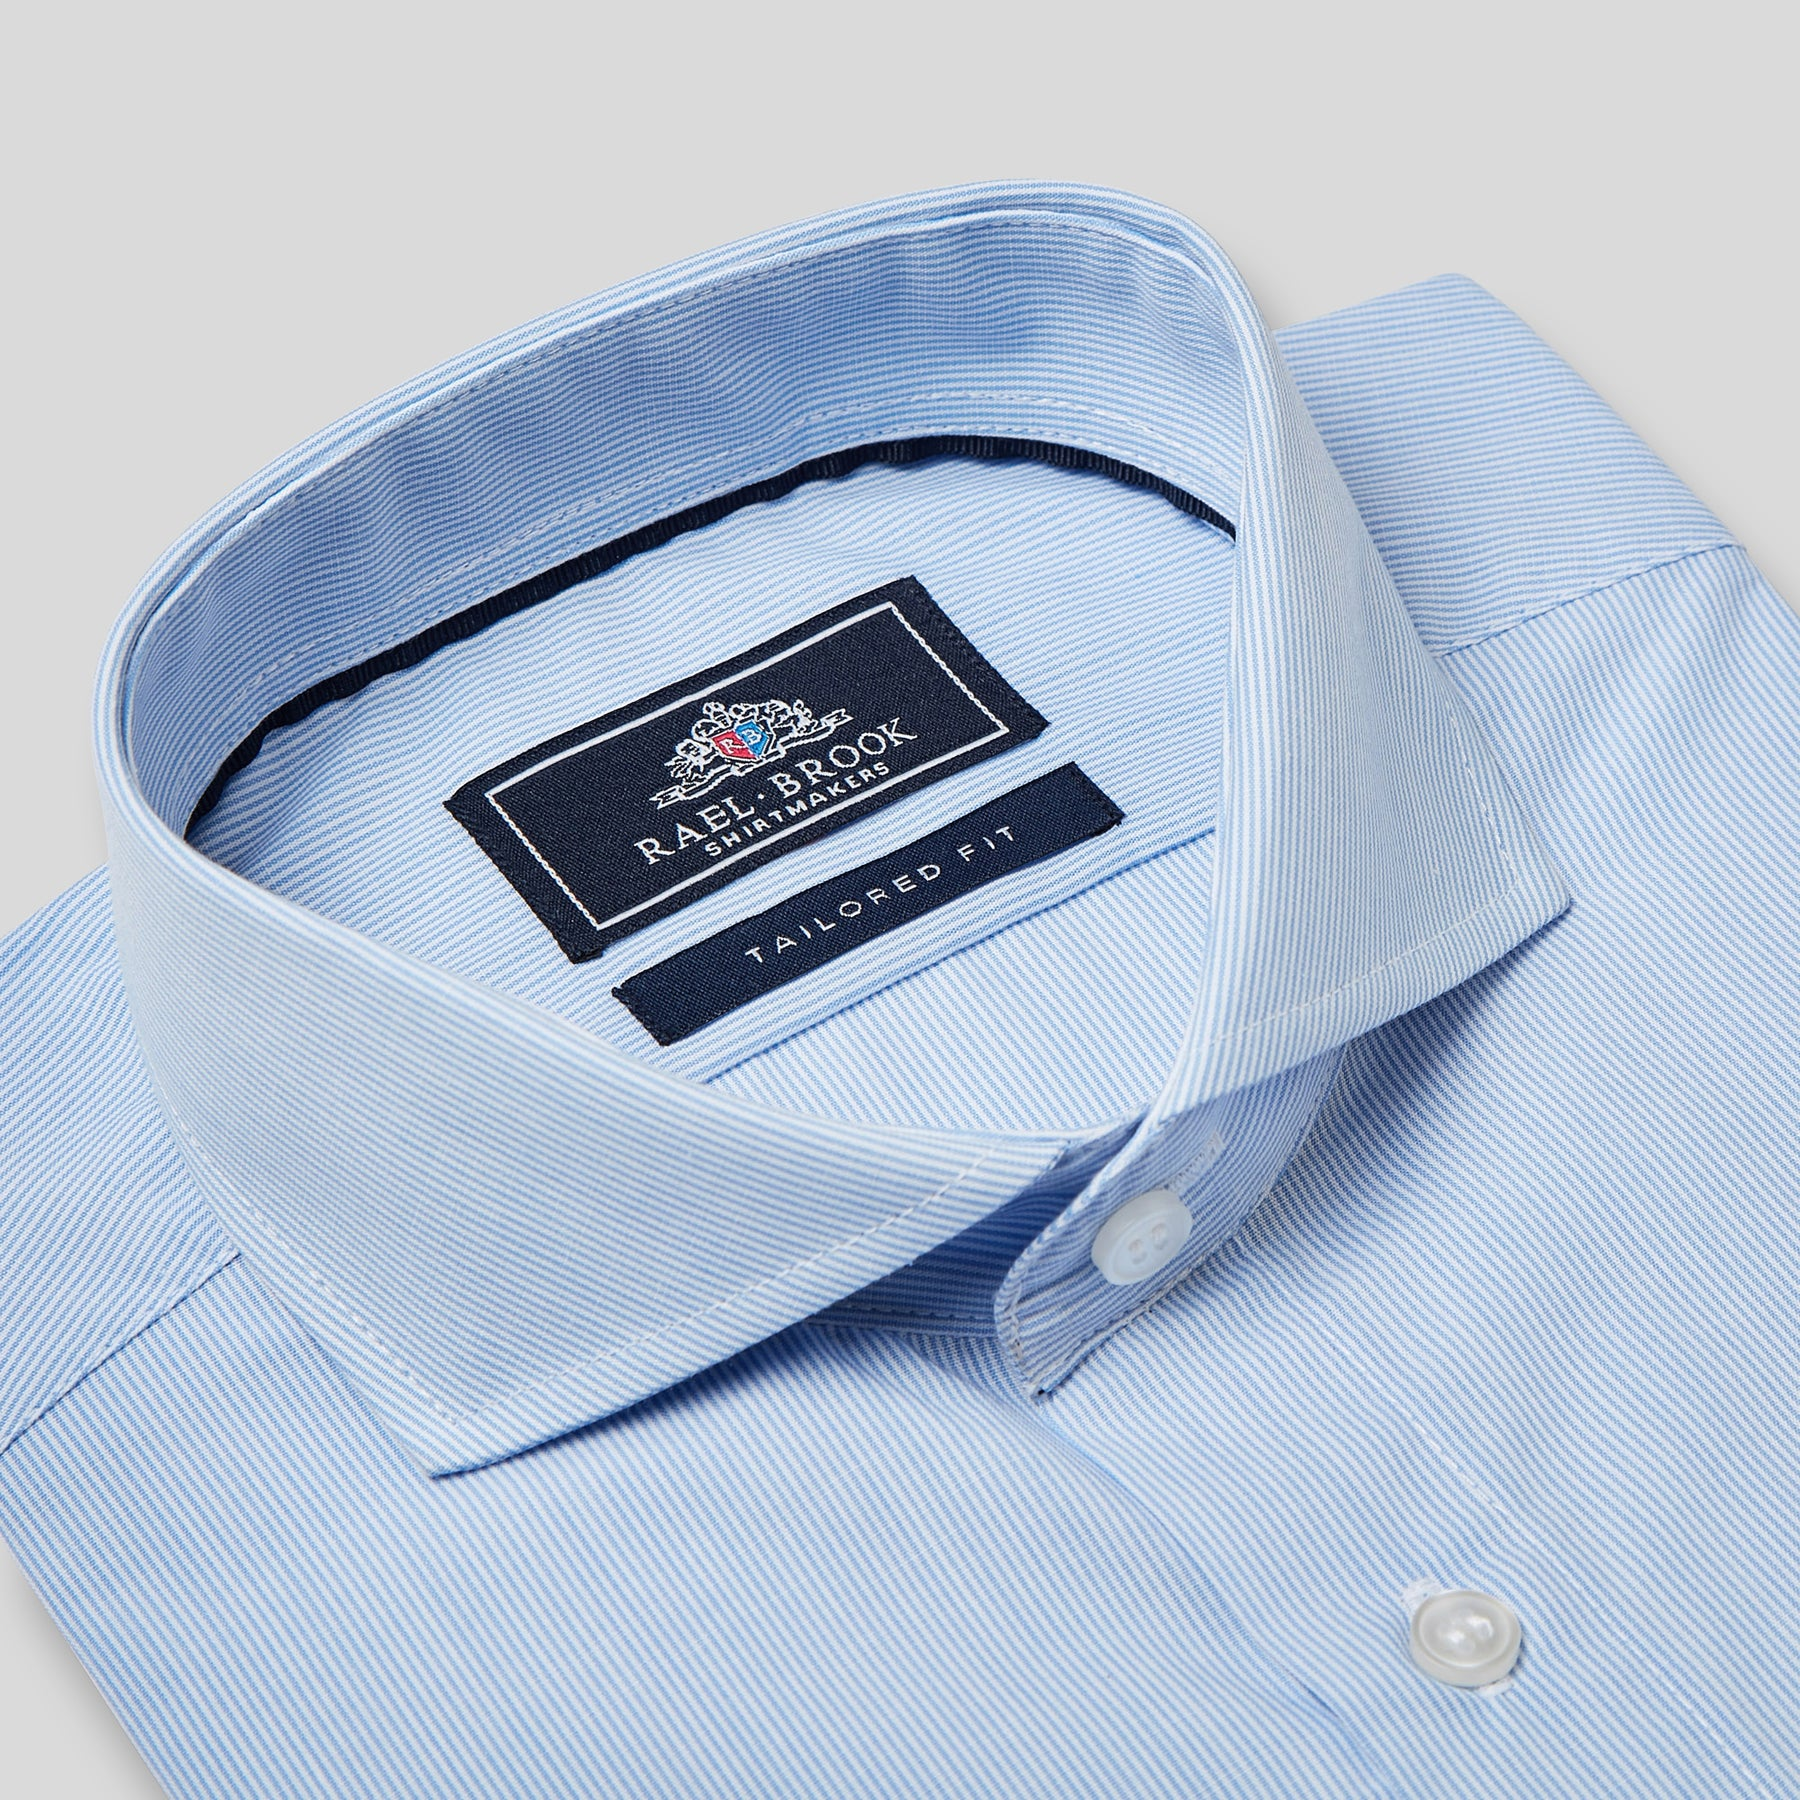 Rael Brook Tailored Fit Blue Pinstripe Single Cuff Shirt Collar